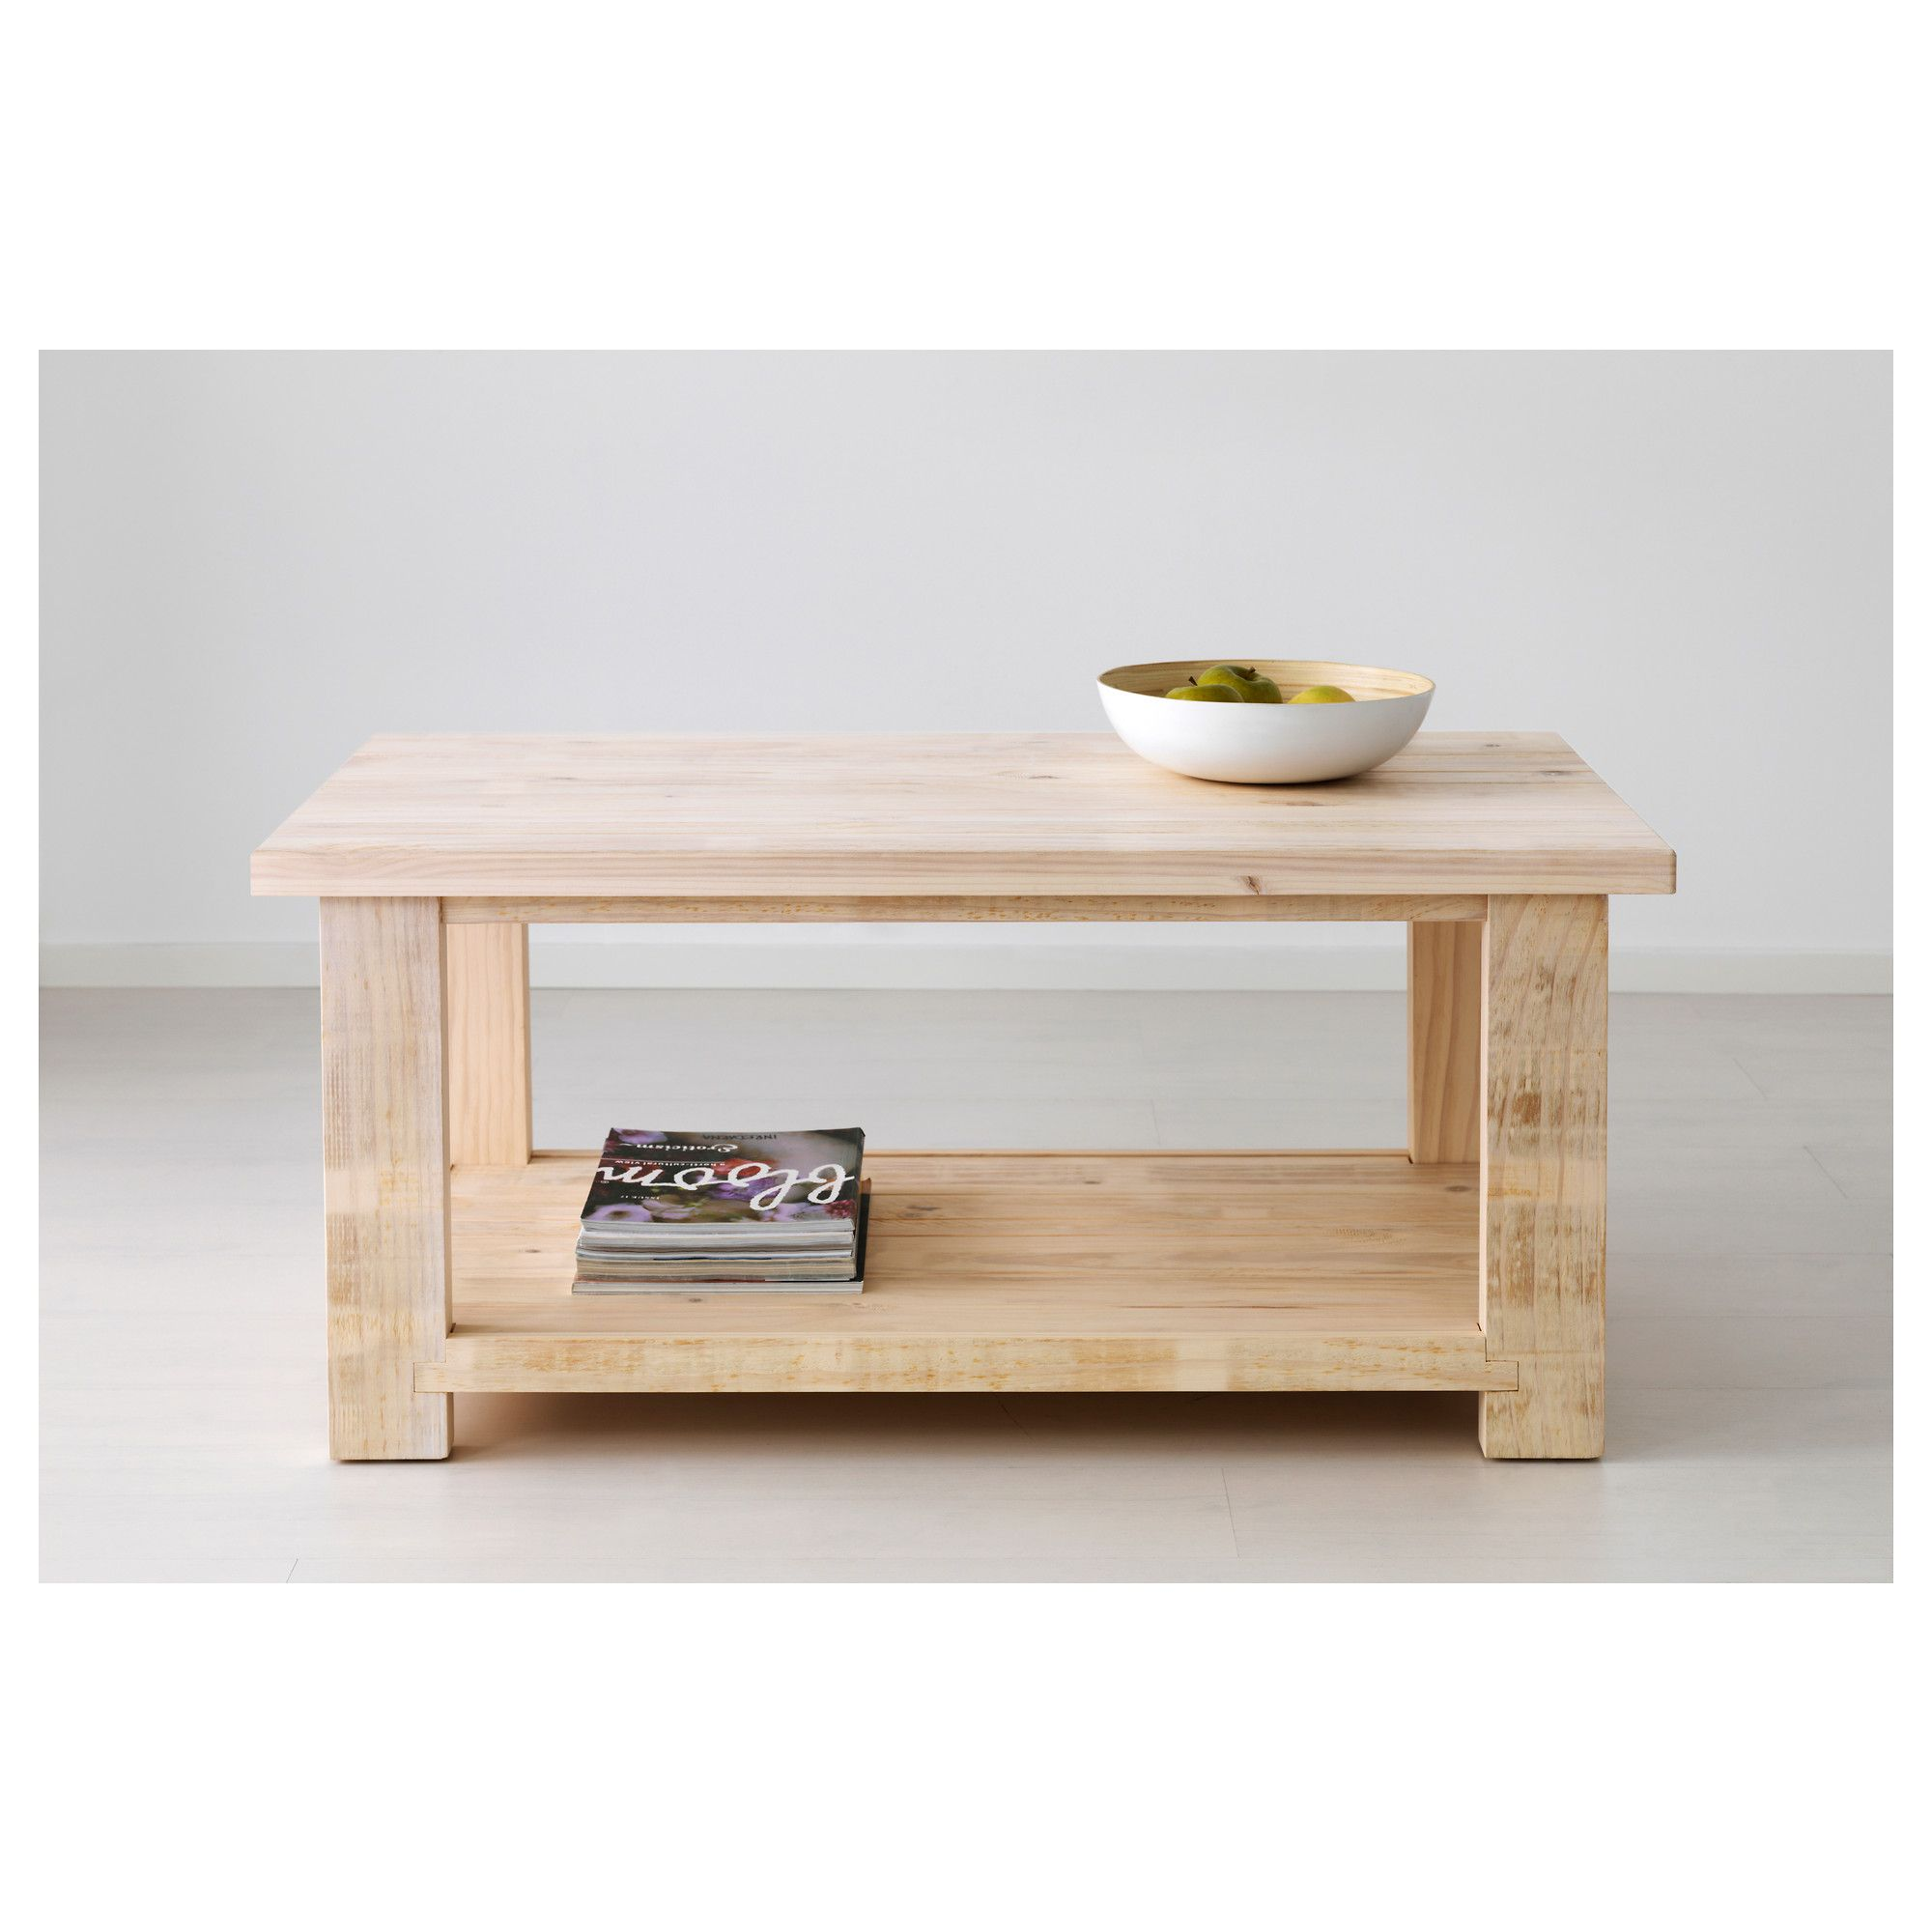 Ikea Rekarne Coffee Table Rascalartsnyc